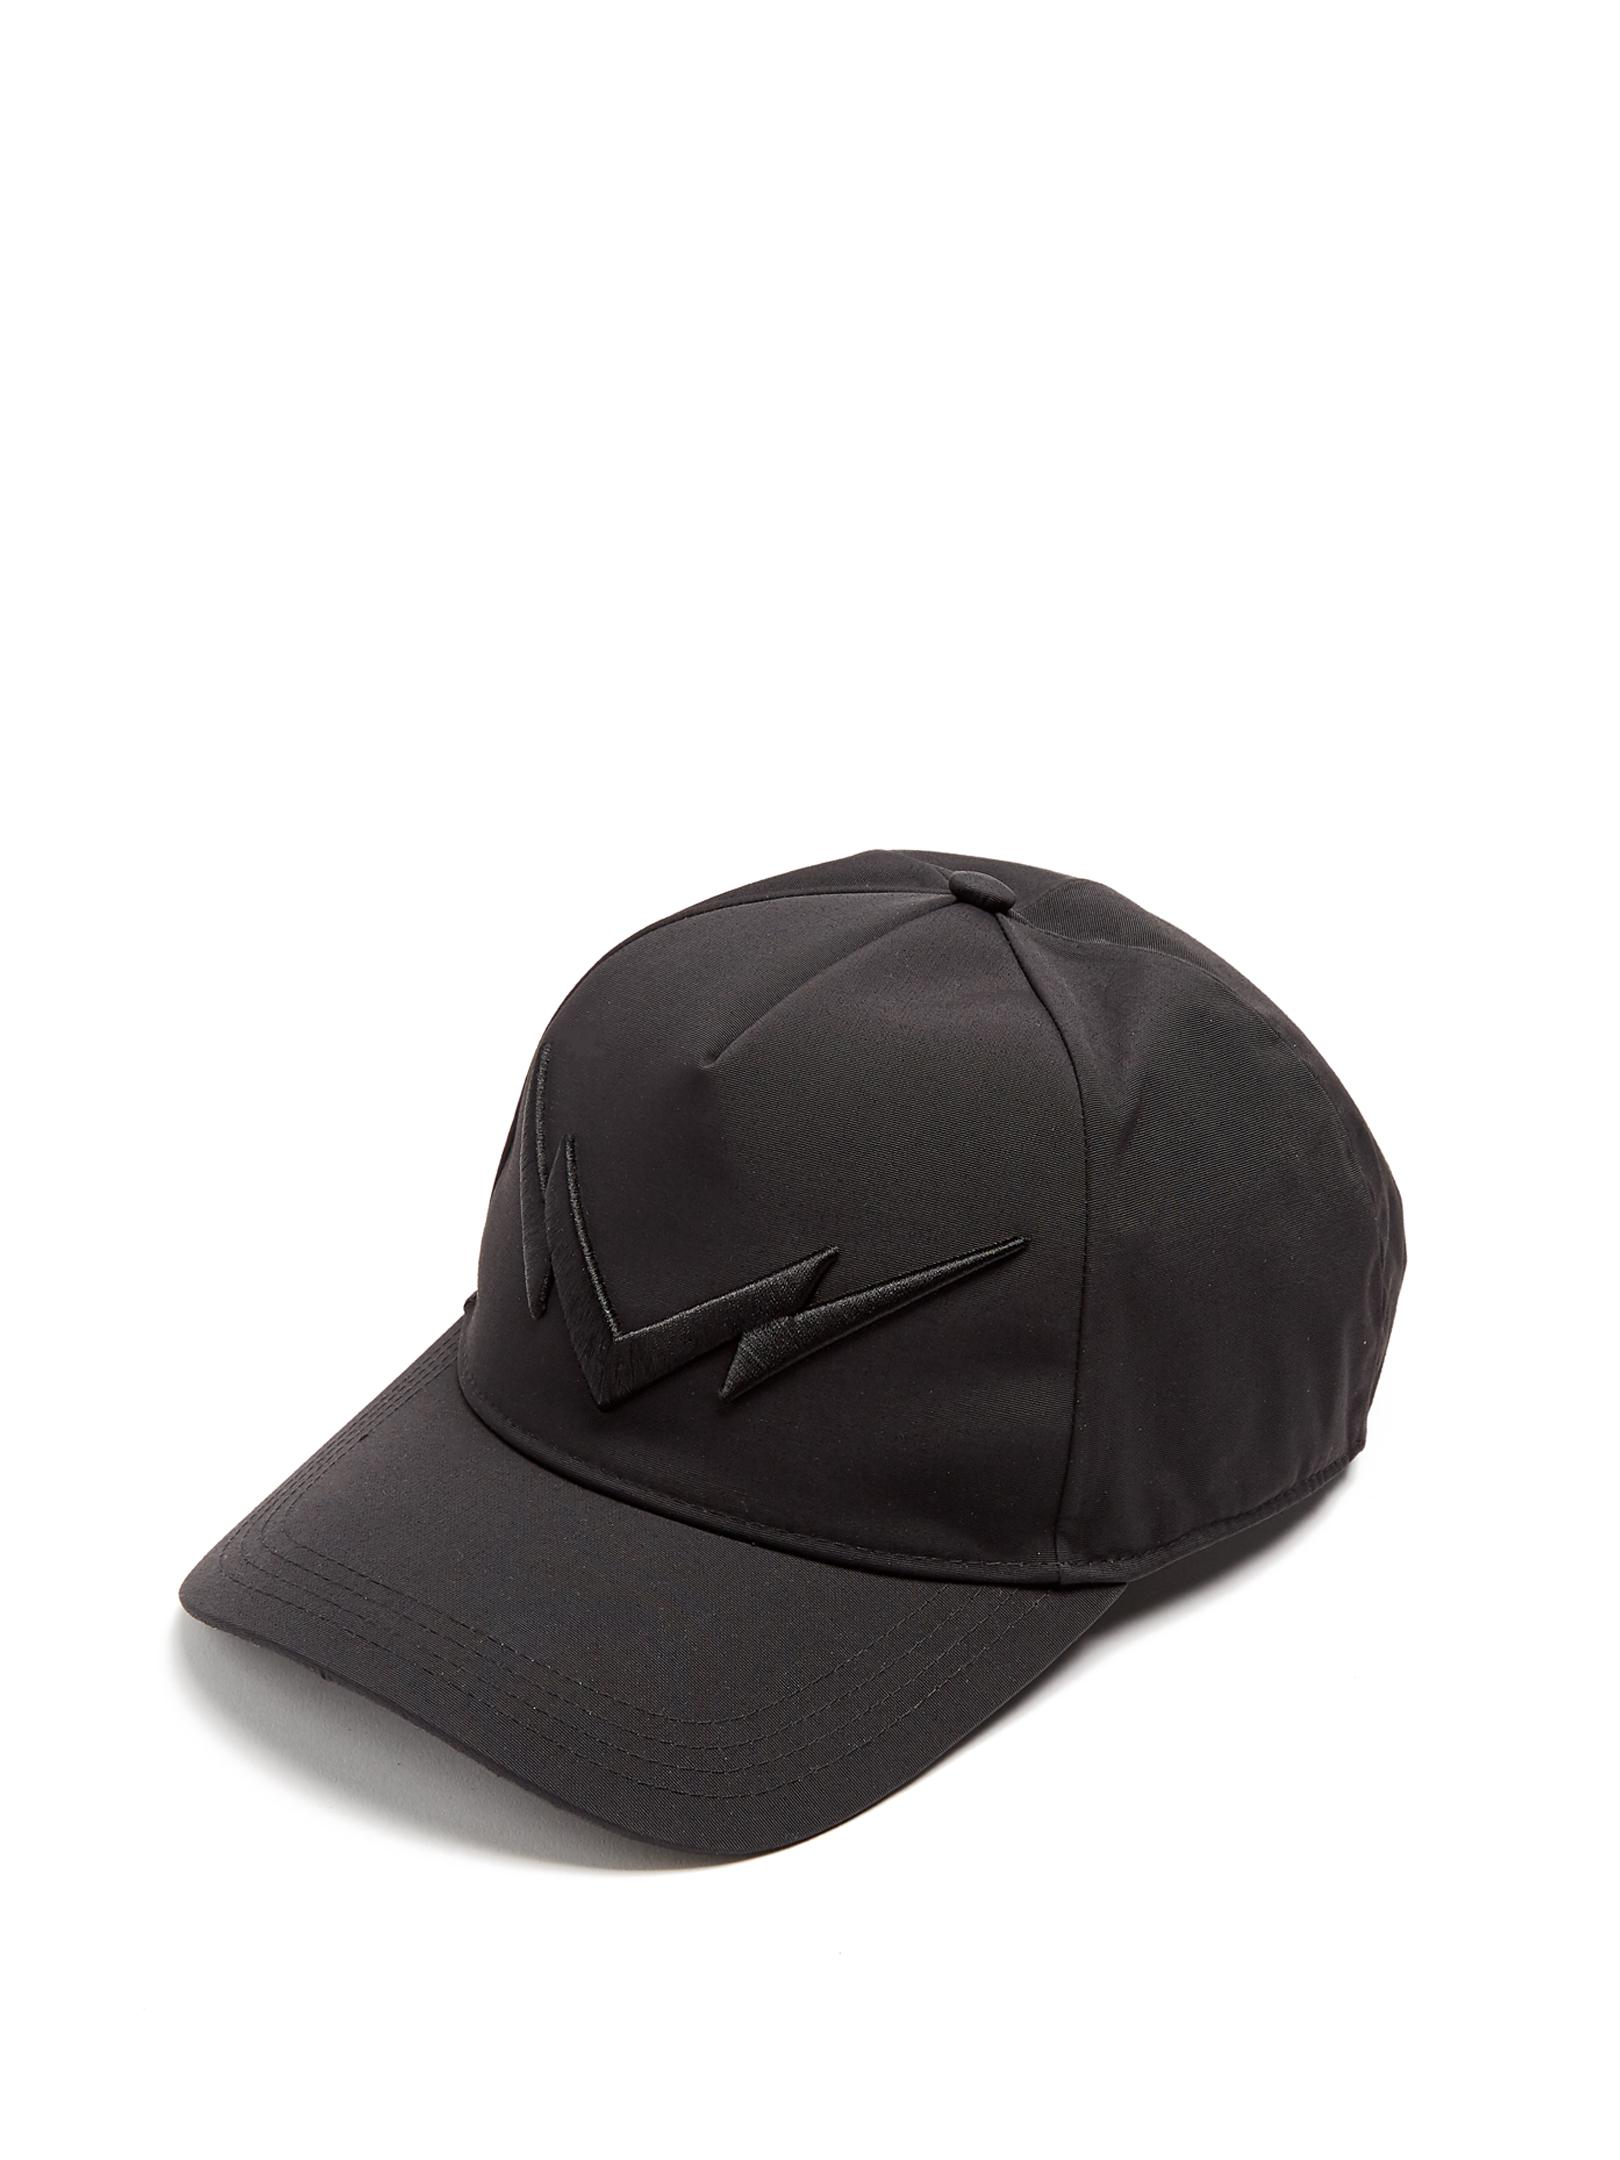 Lyst - Neil Barrett Mirrored Lightning-bolt Embroidered Baseball Cap ... 77a184a29c87